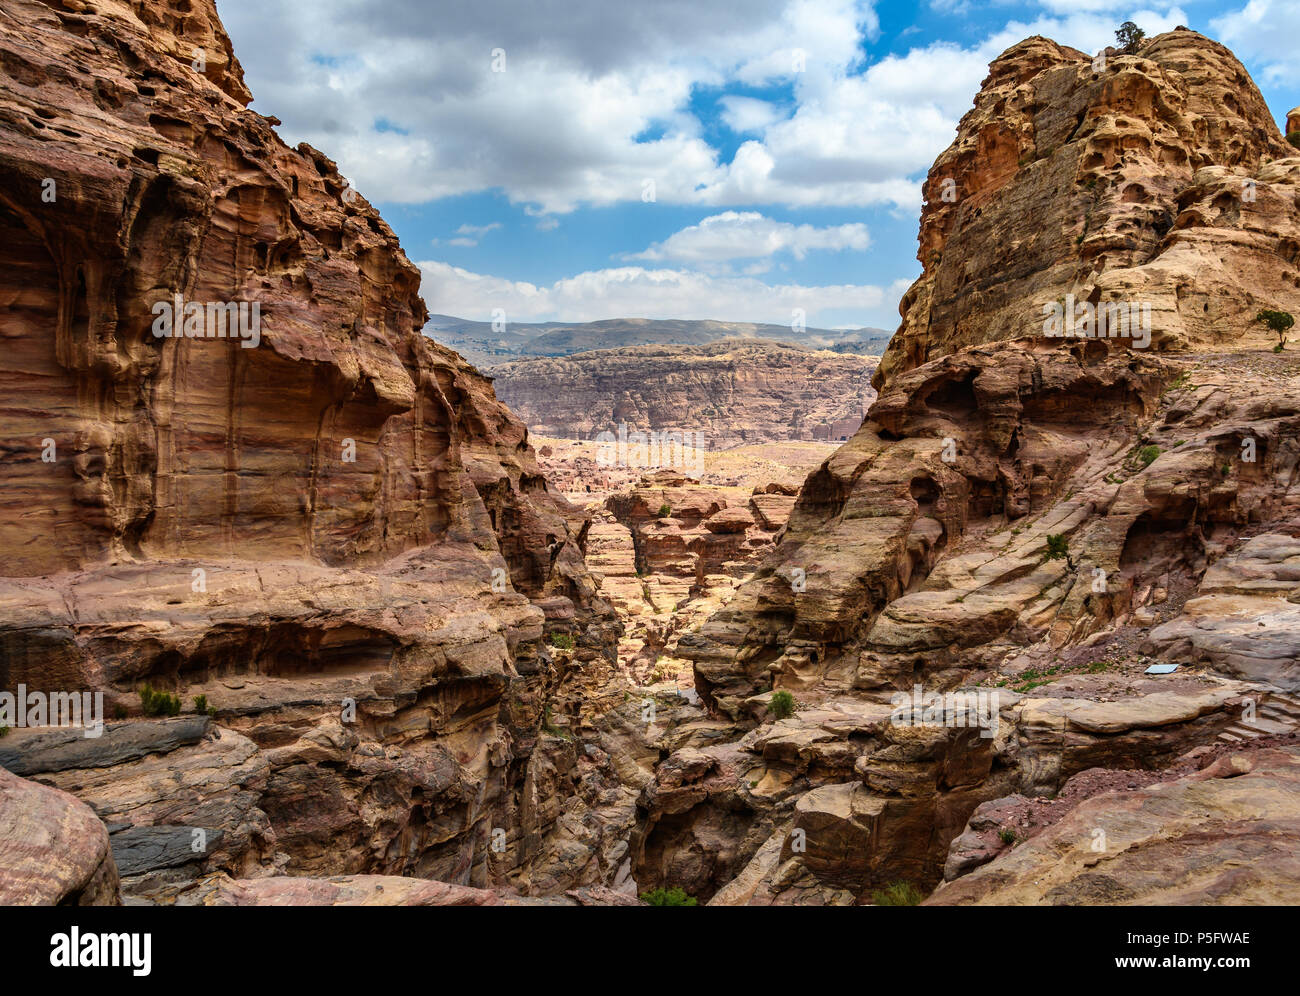 View from the Monastery trail from the Lost City of Petra, Jordan - Stock Image